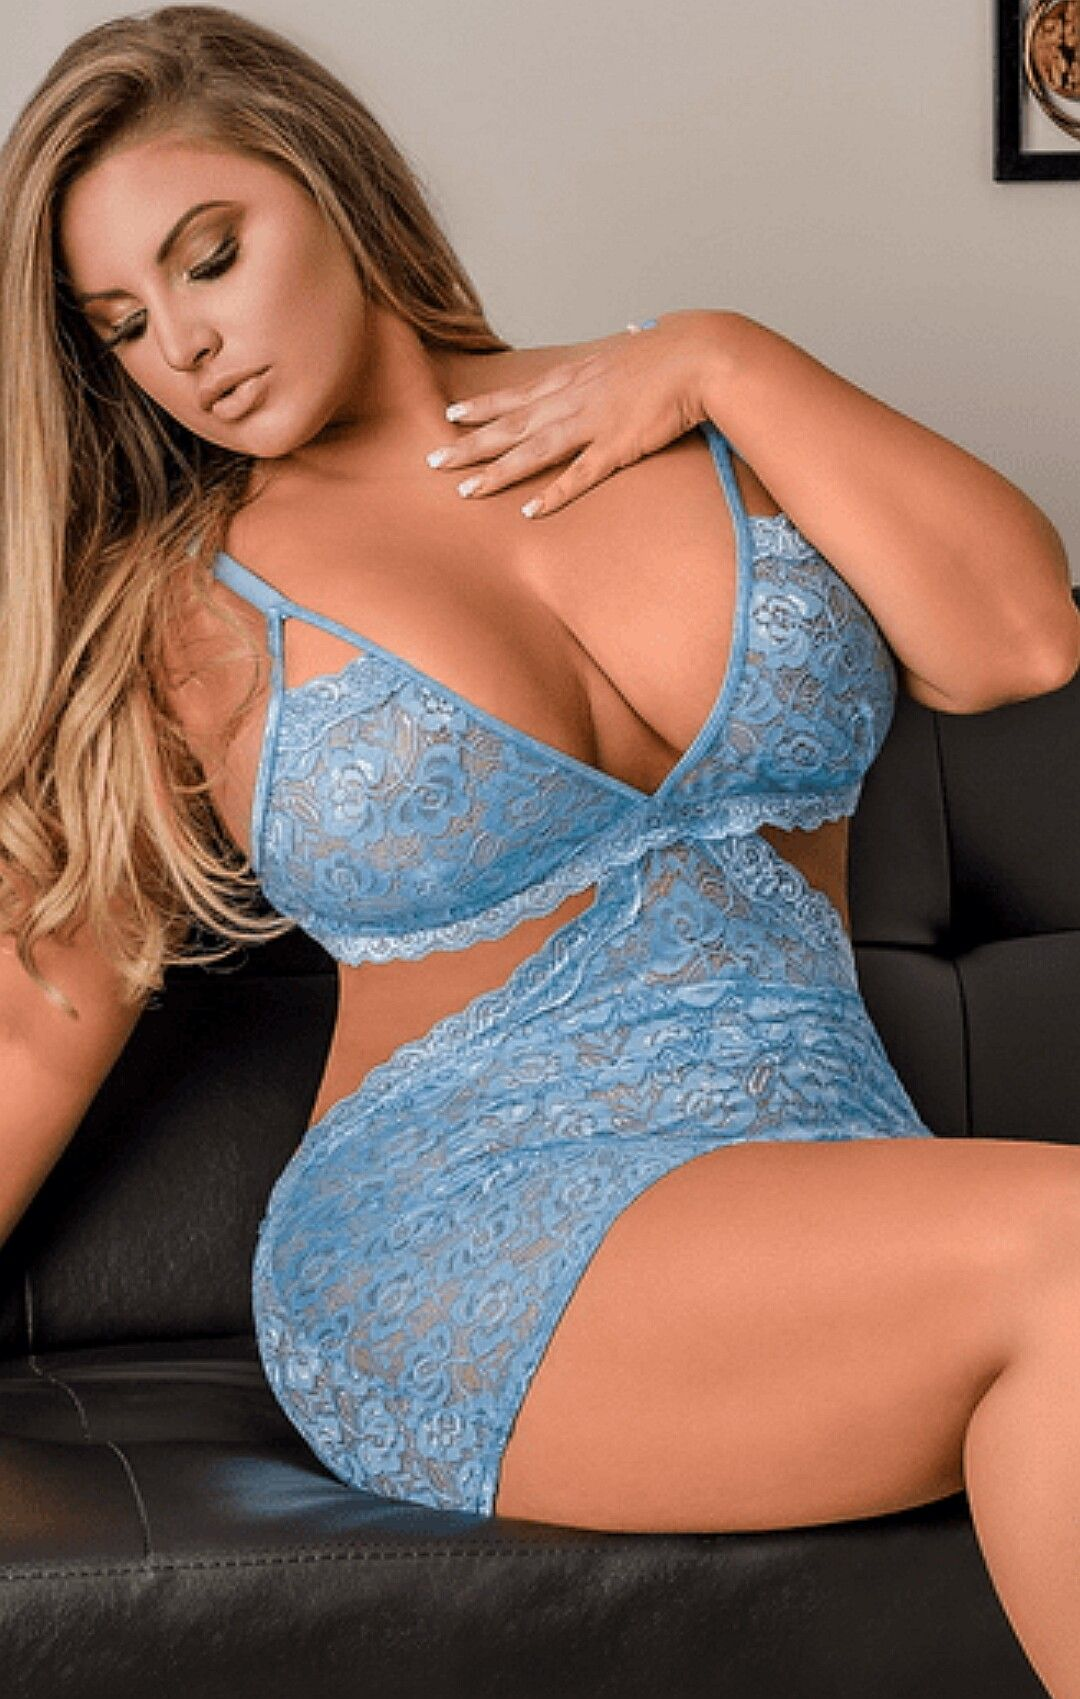 79475f5d3 Ashley Alexiss Plus Size Lingerie Models, Plunging Neckline, Sexy Dresses,  Formal Dresses,